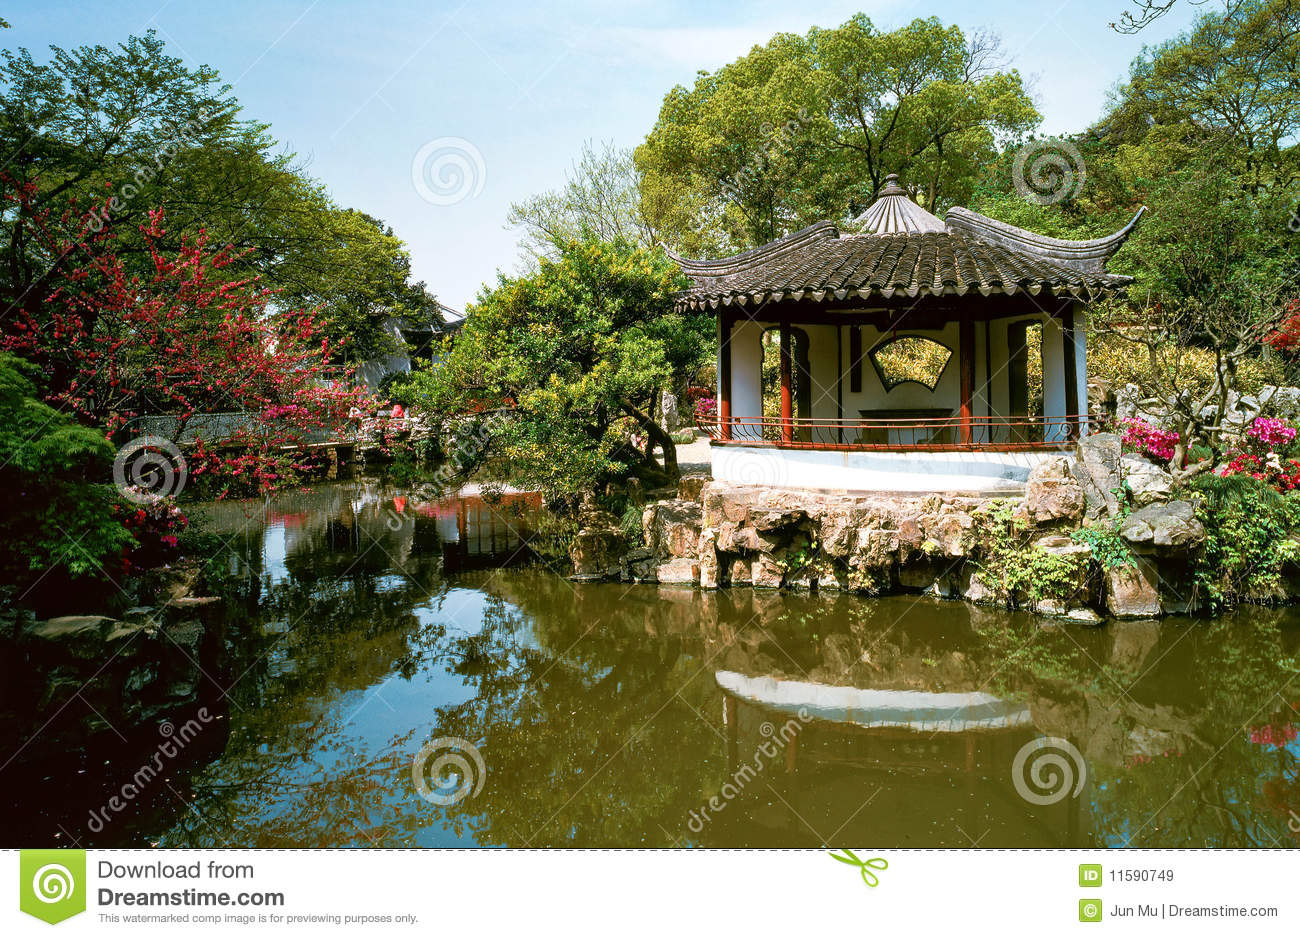 Chinese garden royalty free stock images image 11590749 for Garden pond design software free download